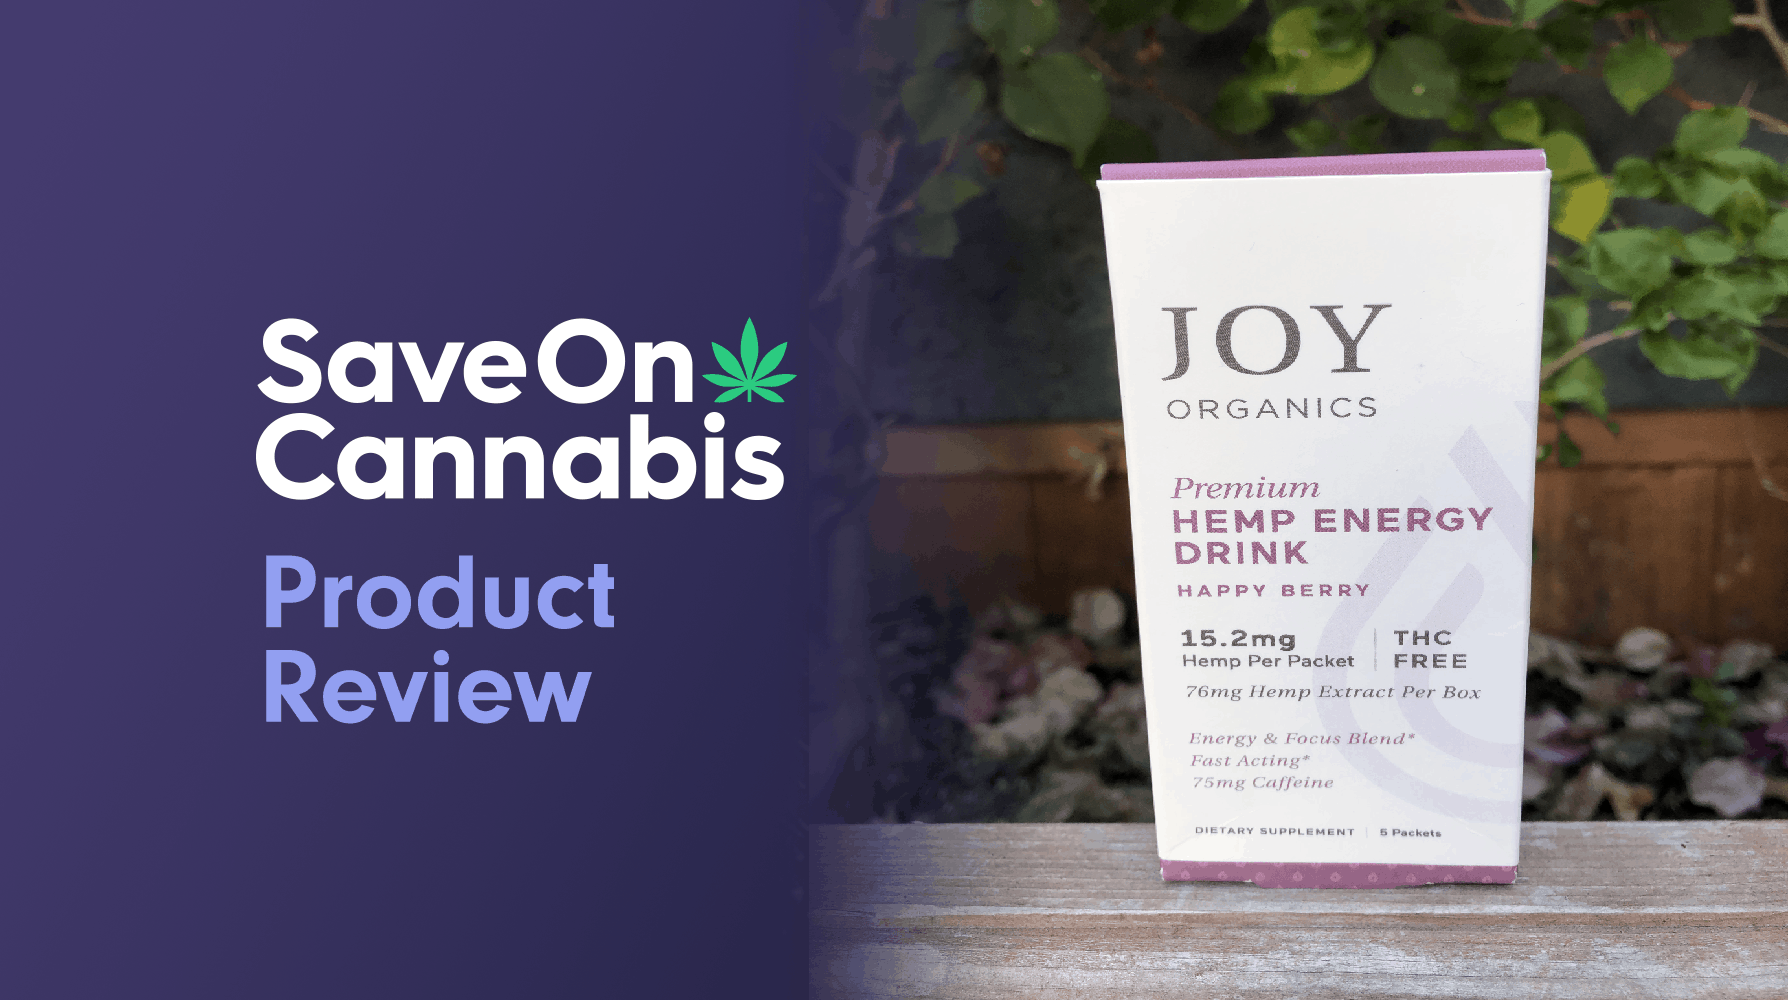 joy organics cbd energy drink all premium cbd com save on cannabis website